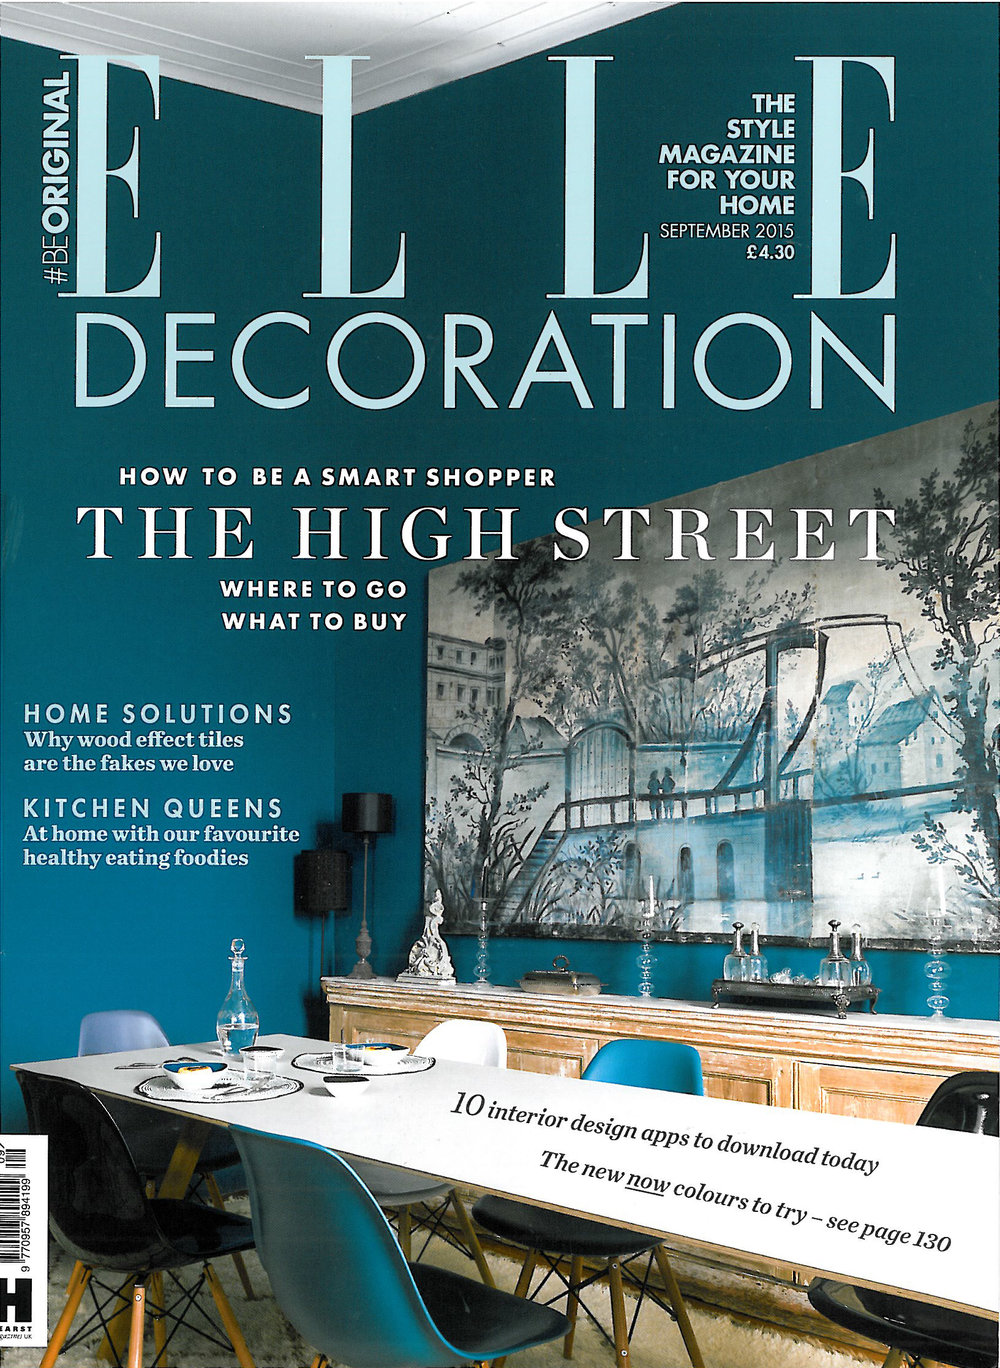 Elle Decoration – Sept 2015